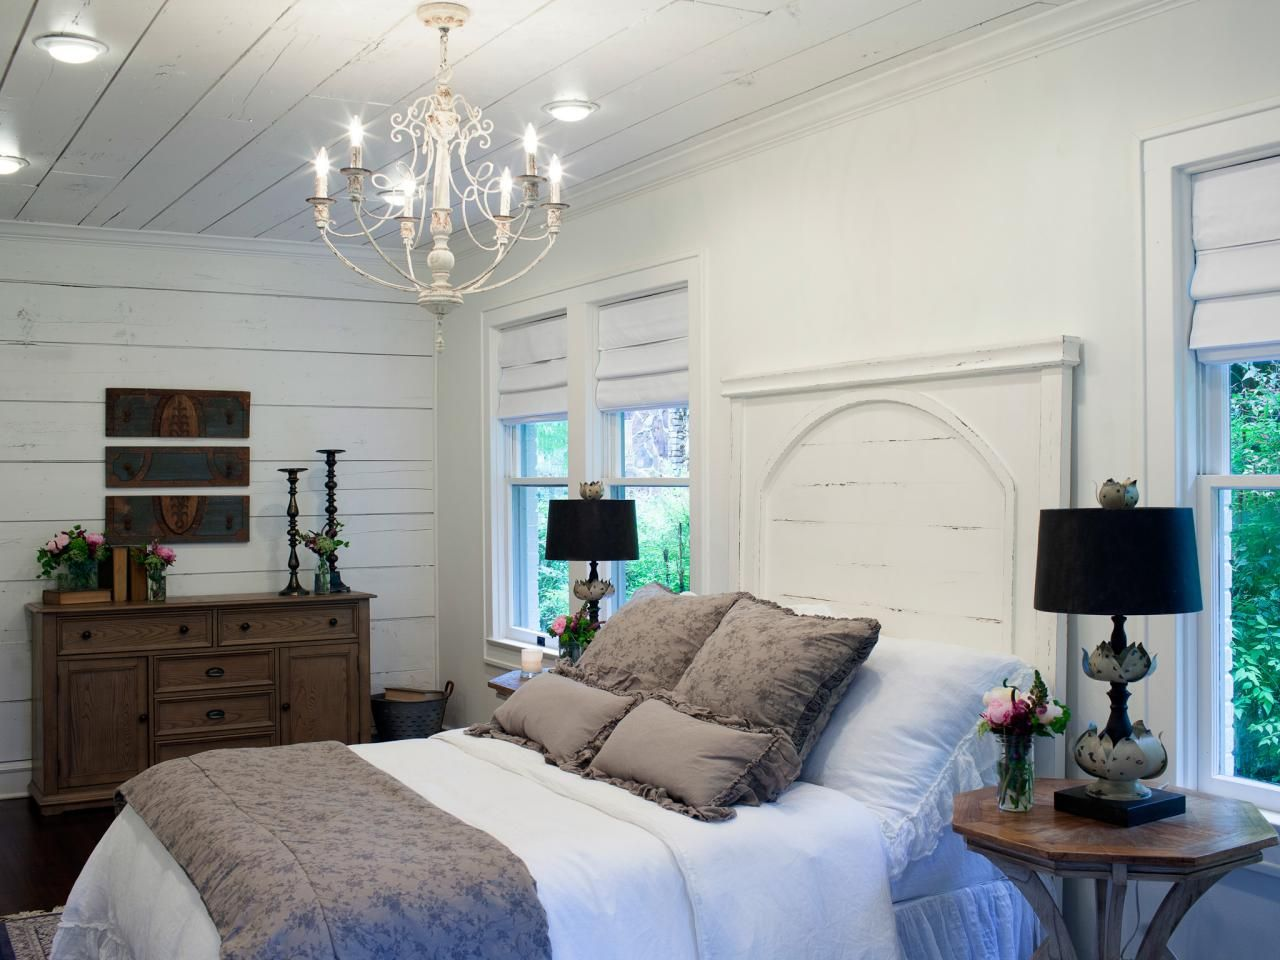 Joanna gaines bedrooms photos hgtv 39 s fixer upper with for Fixer upper bedroom designs